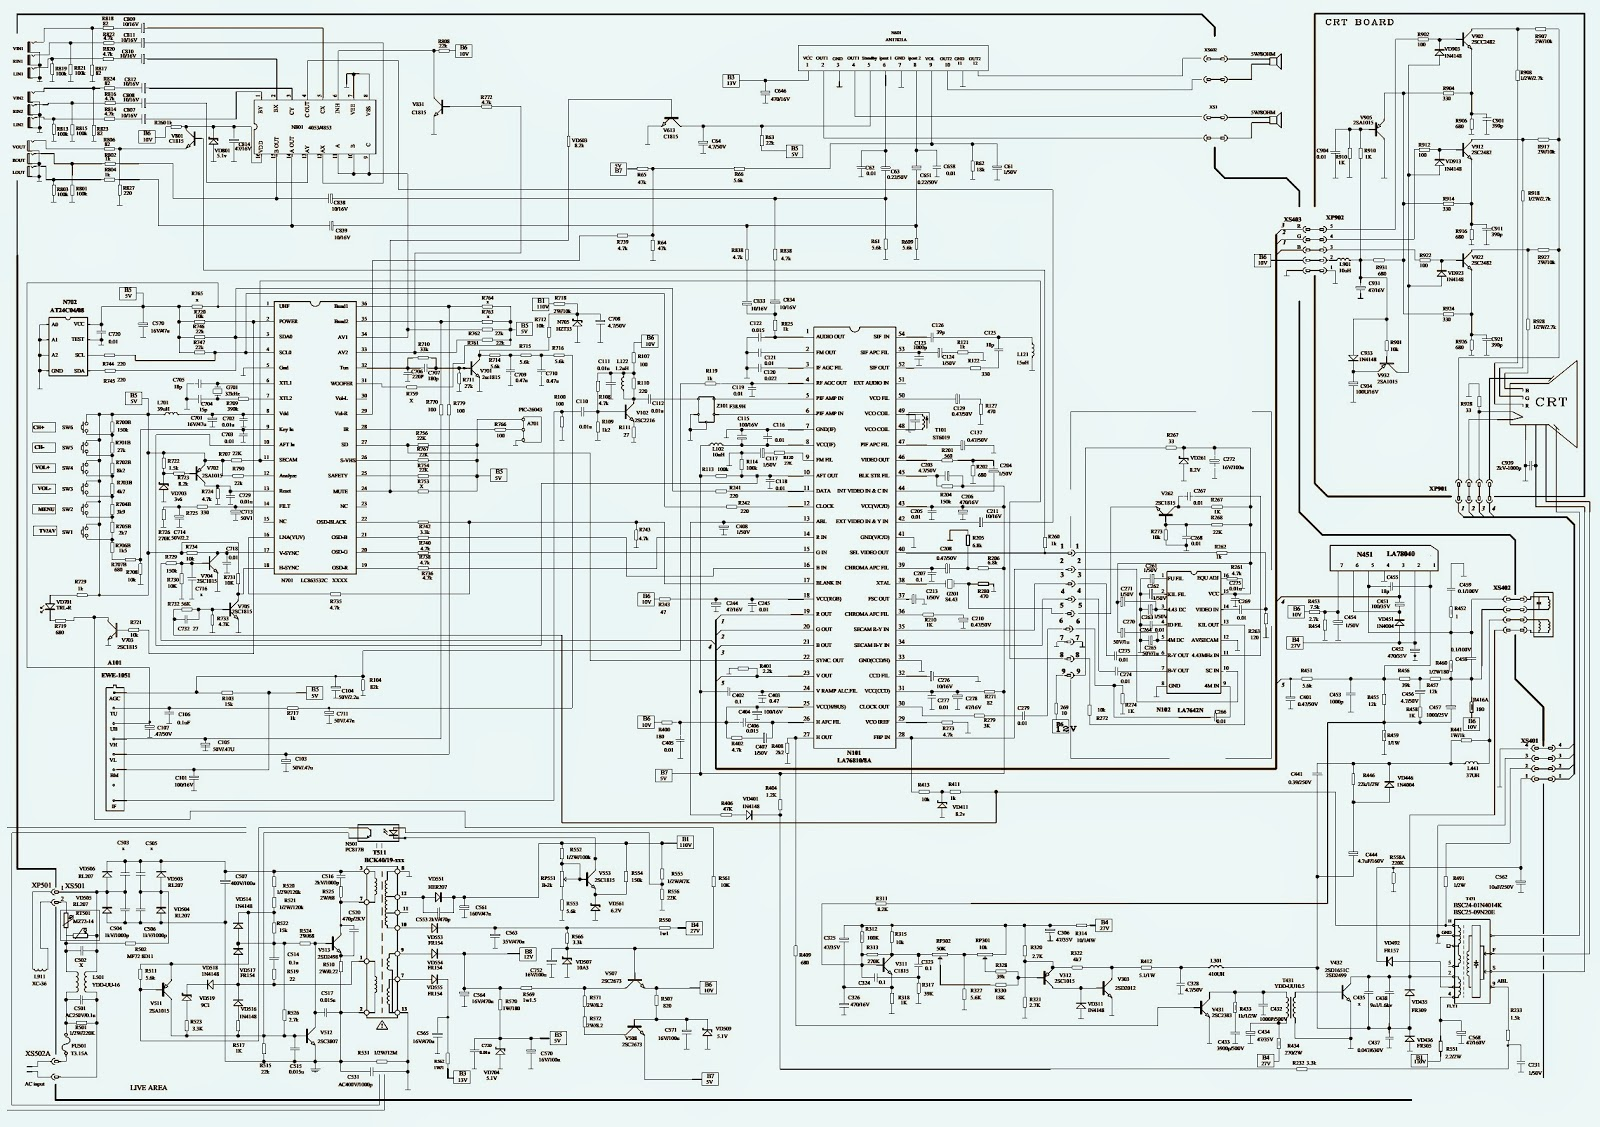 Chinese Color Tv Kit Service Help La76810 Lc863532c Electro Bling Switch Wiring Diagram Click On The Schematic To Zoom In